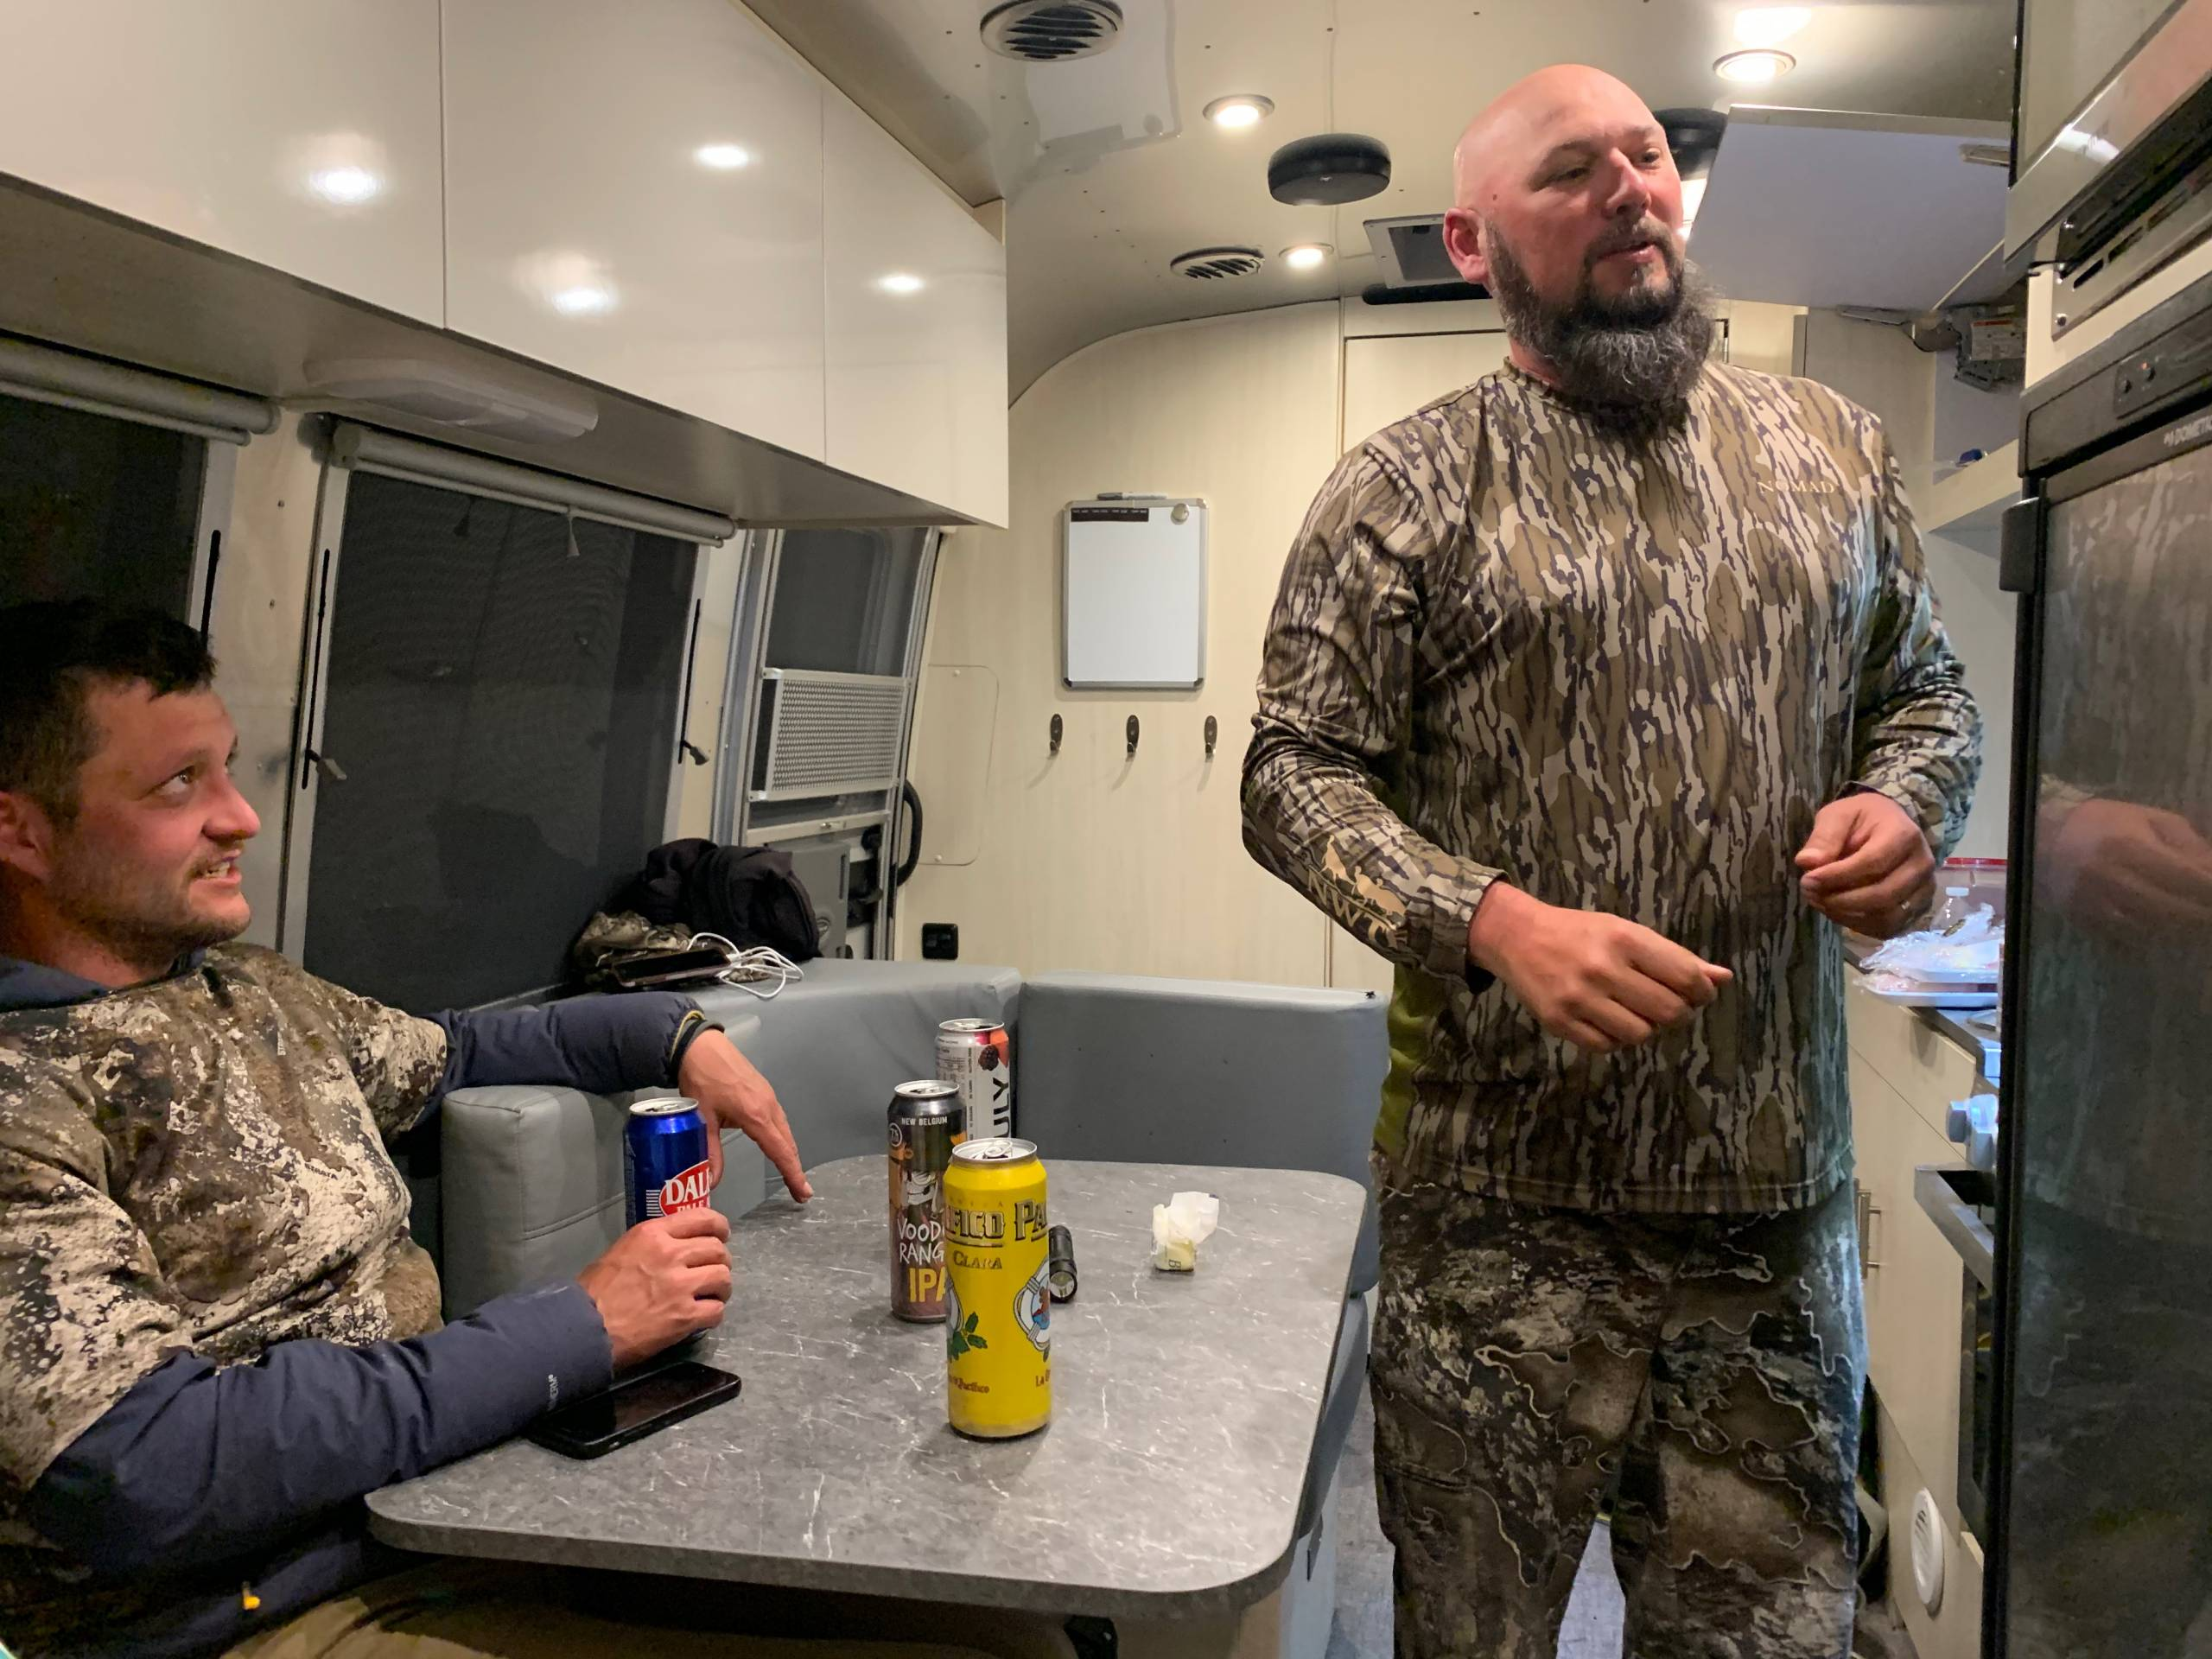 Men in camo inside the Airstream Flying Cloud 23FB